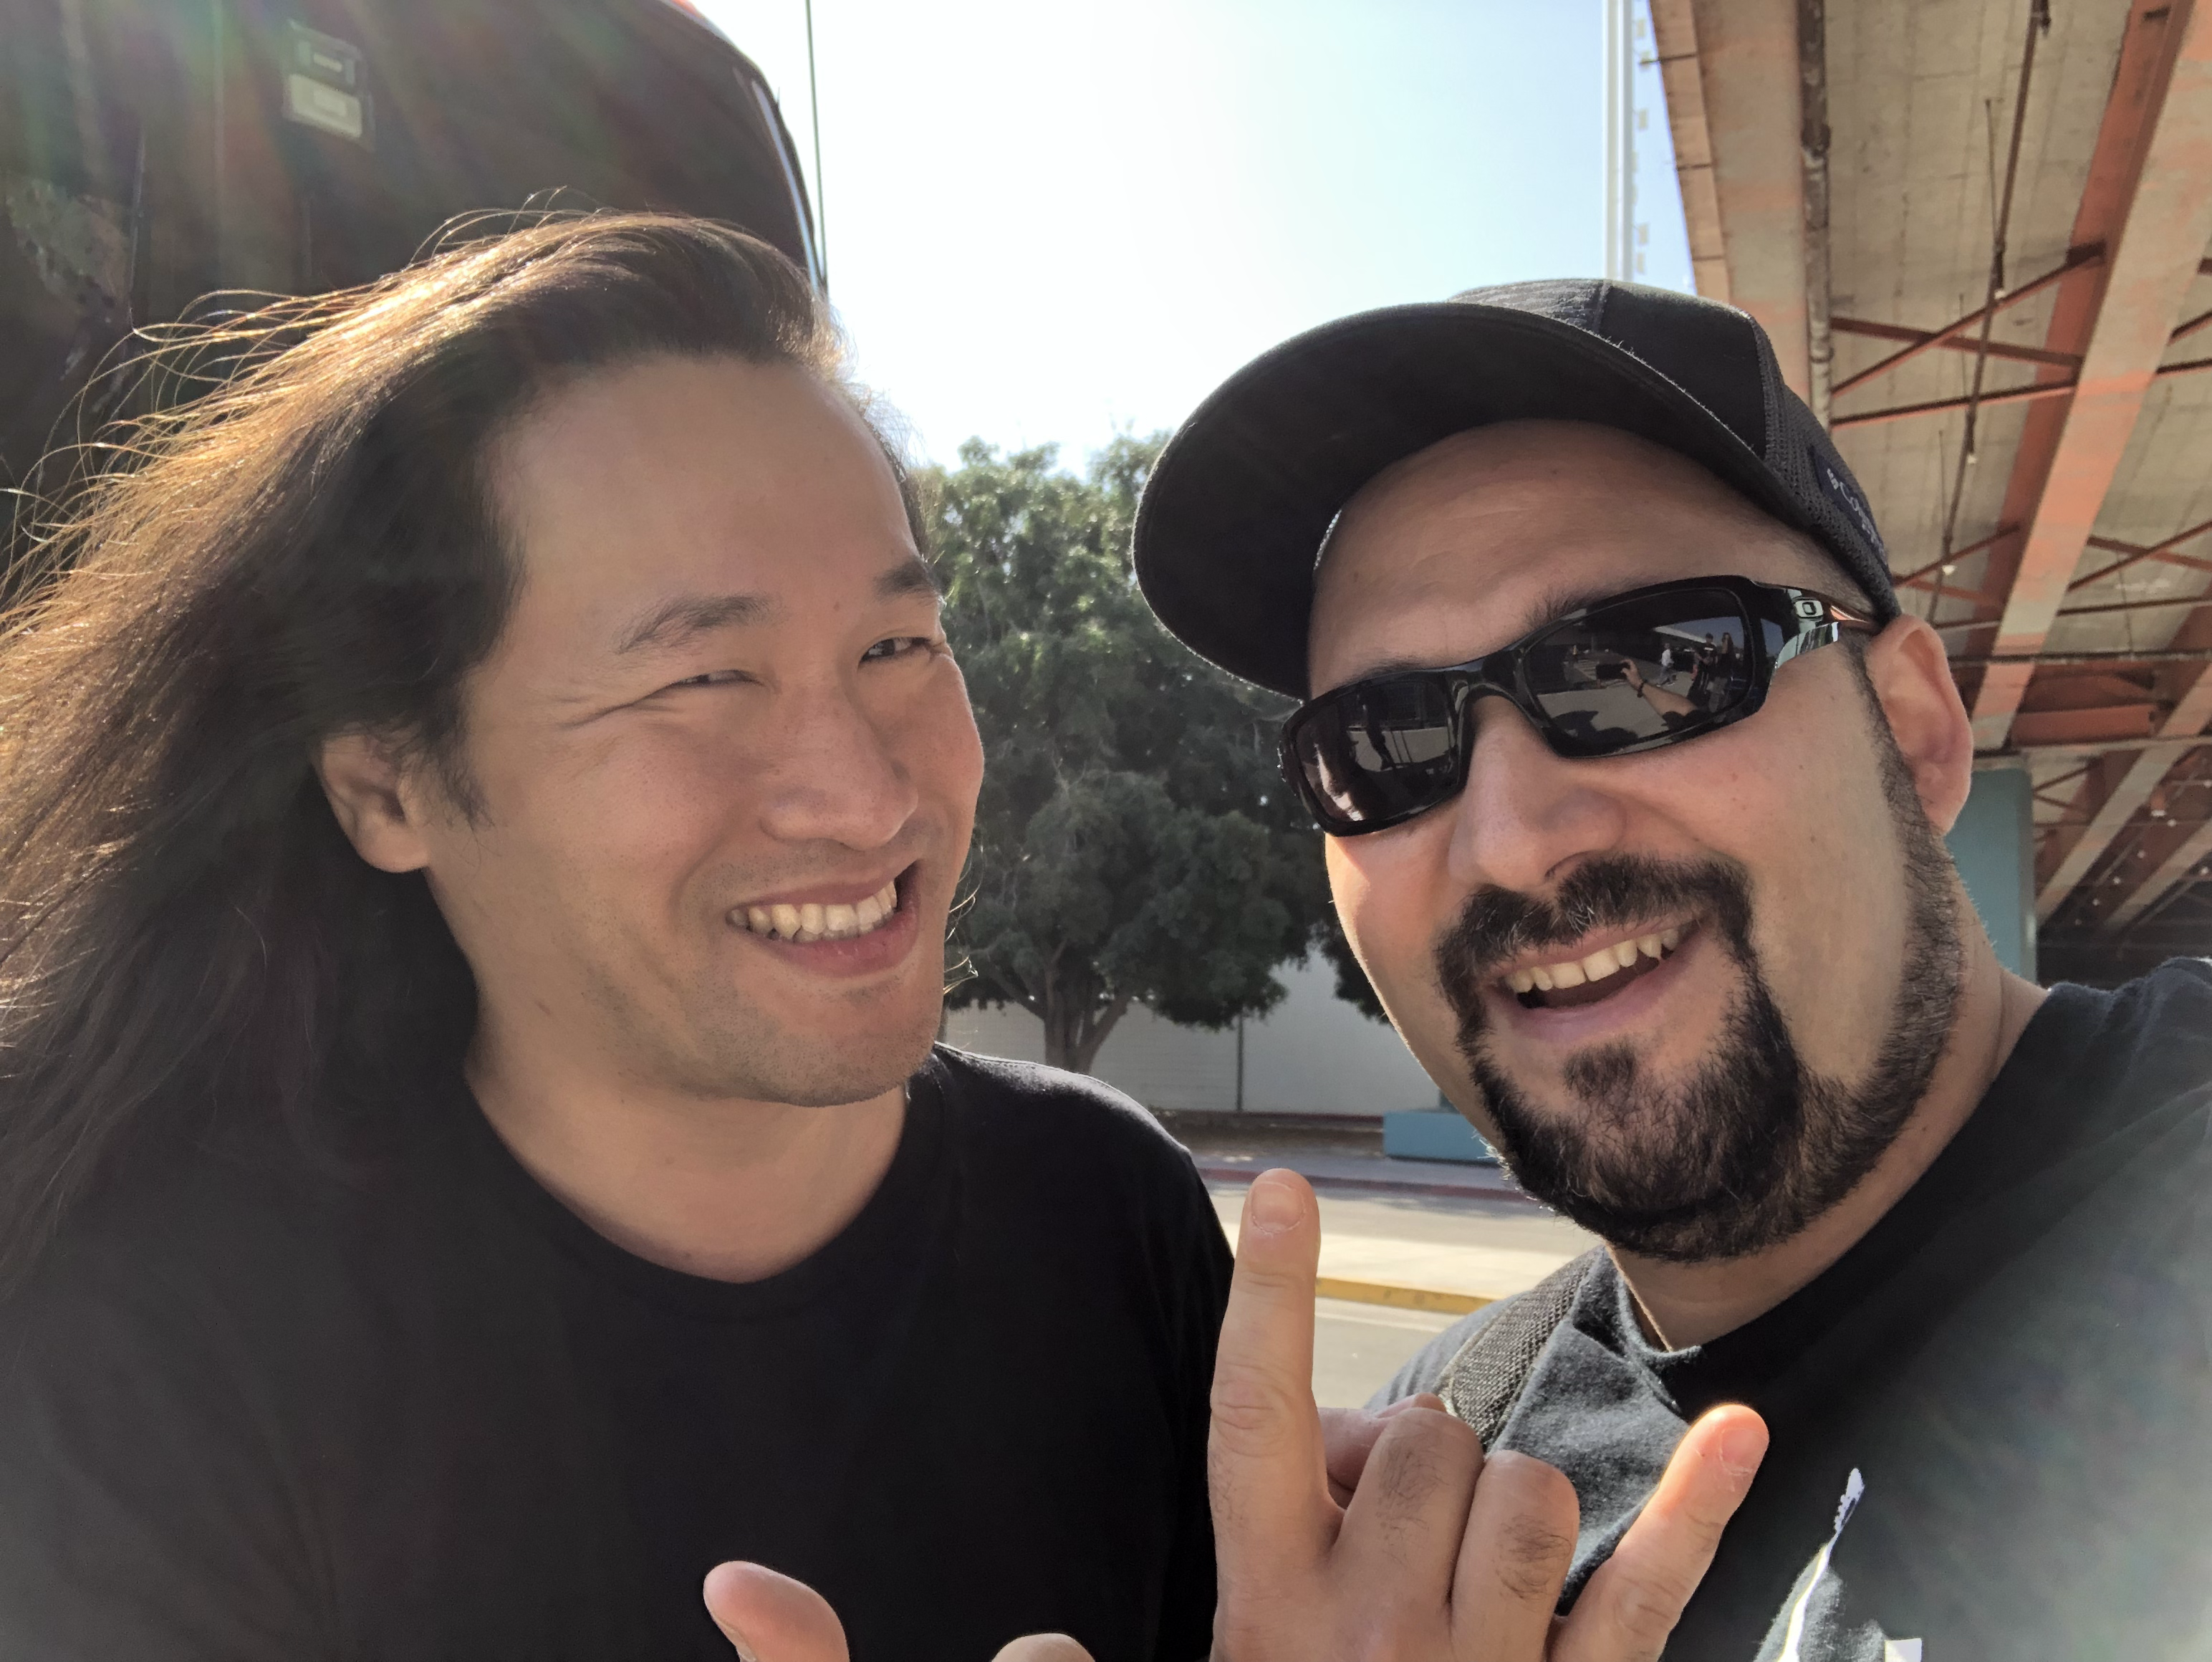 Herman Li and Goolz